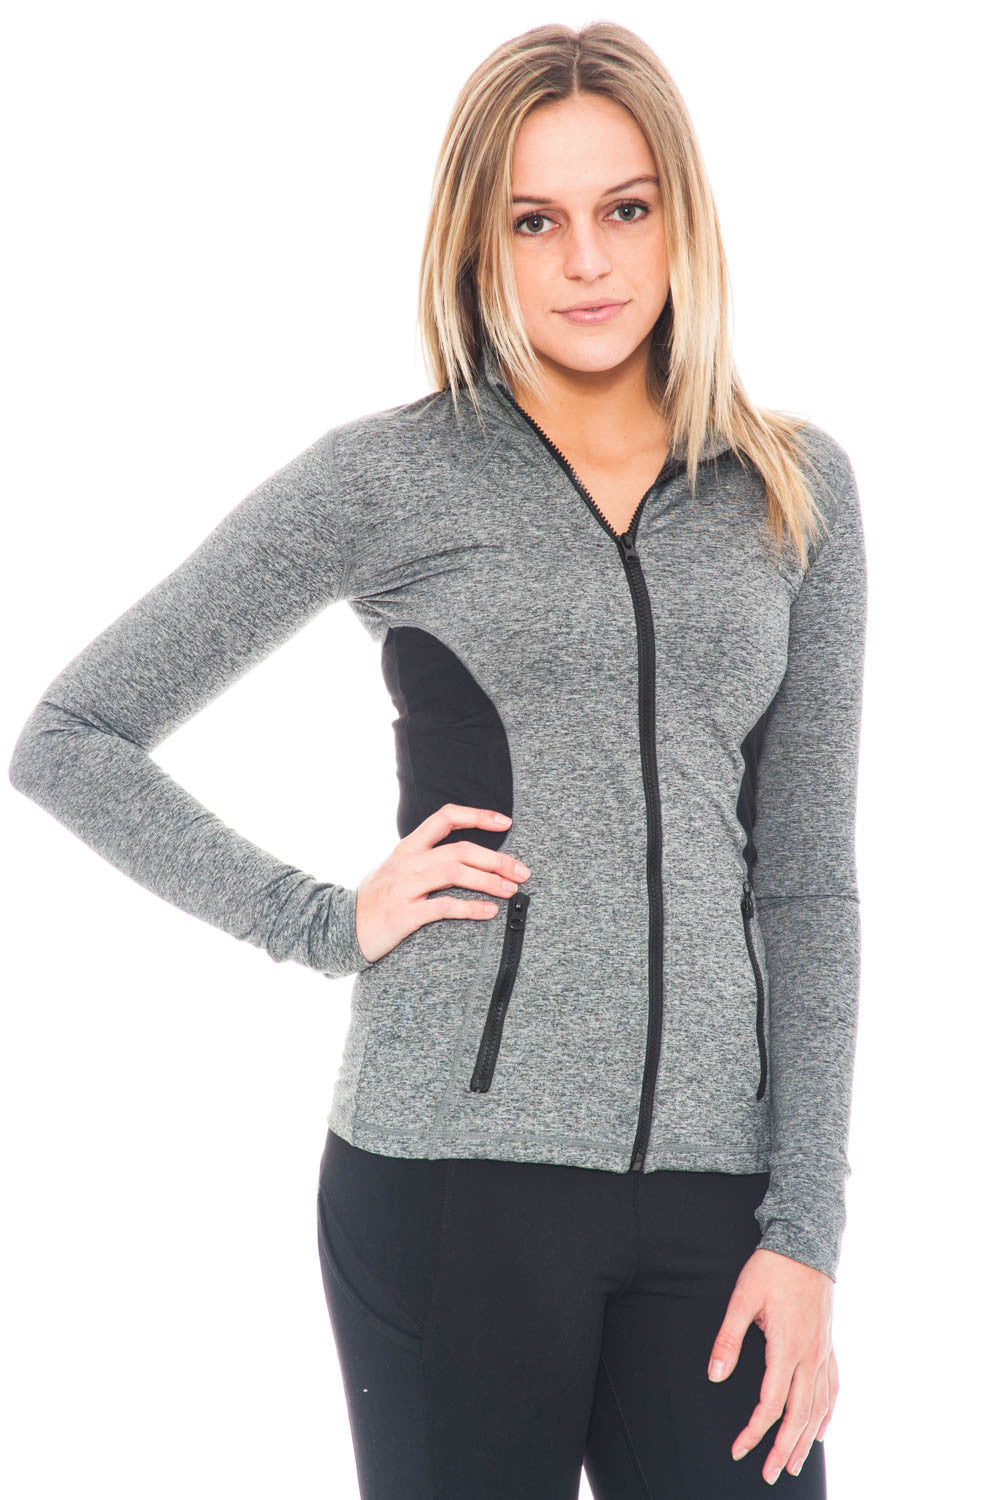 Jacket - Sports Zip-Up Activewear Top by Motion by Coalition